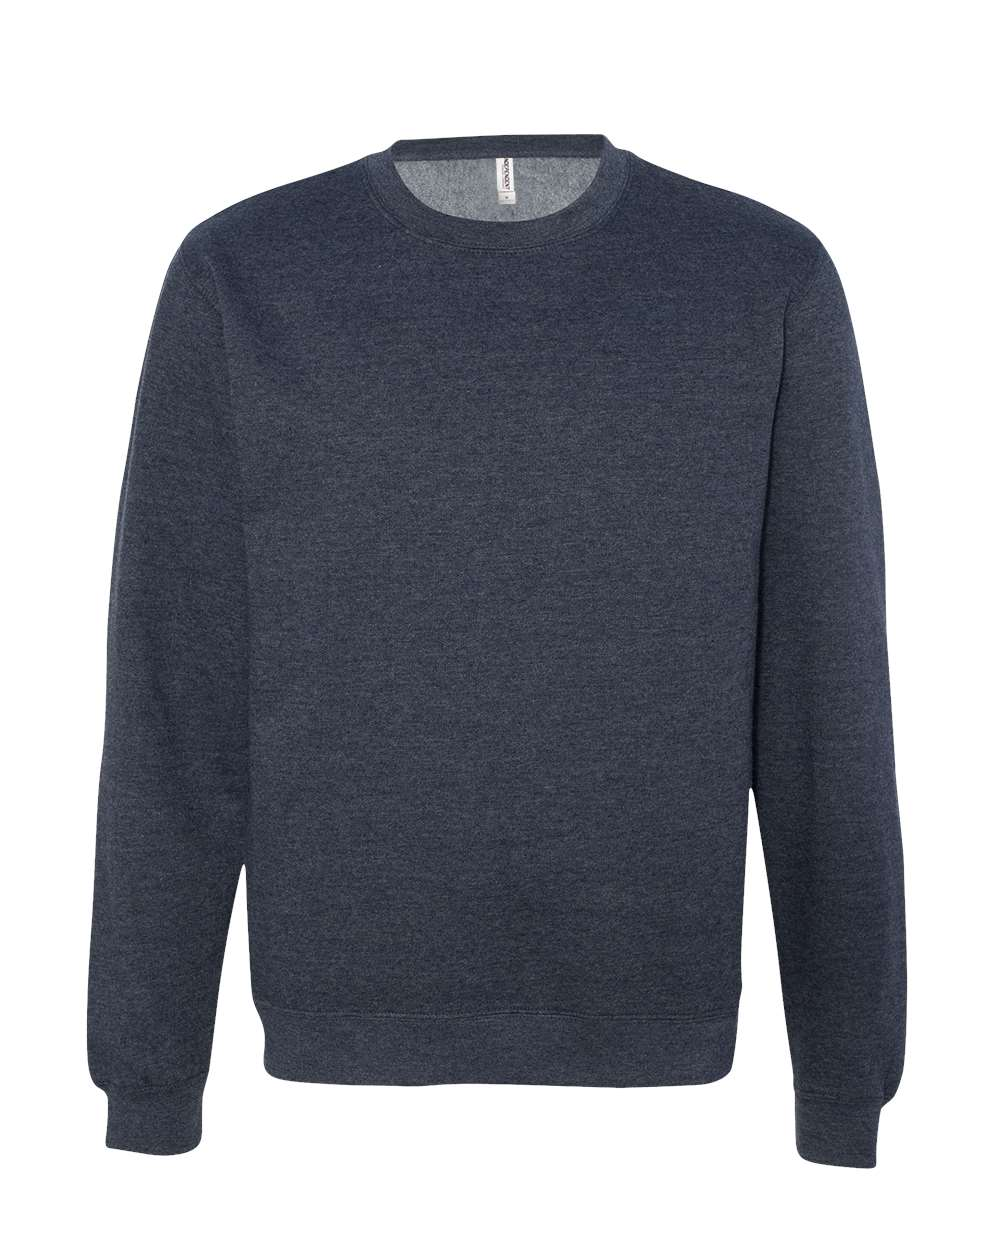 Independent-Trading-Co-Midweight-Crewneck-Sweatshirt-SS3000-up-to-3XL miniature 18